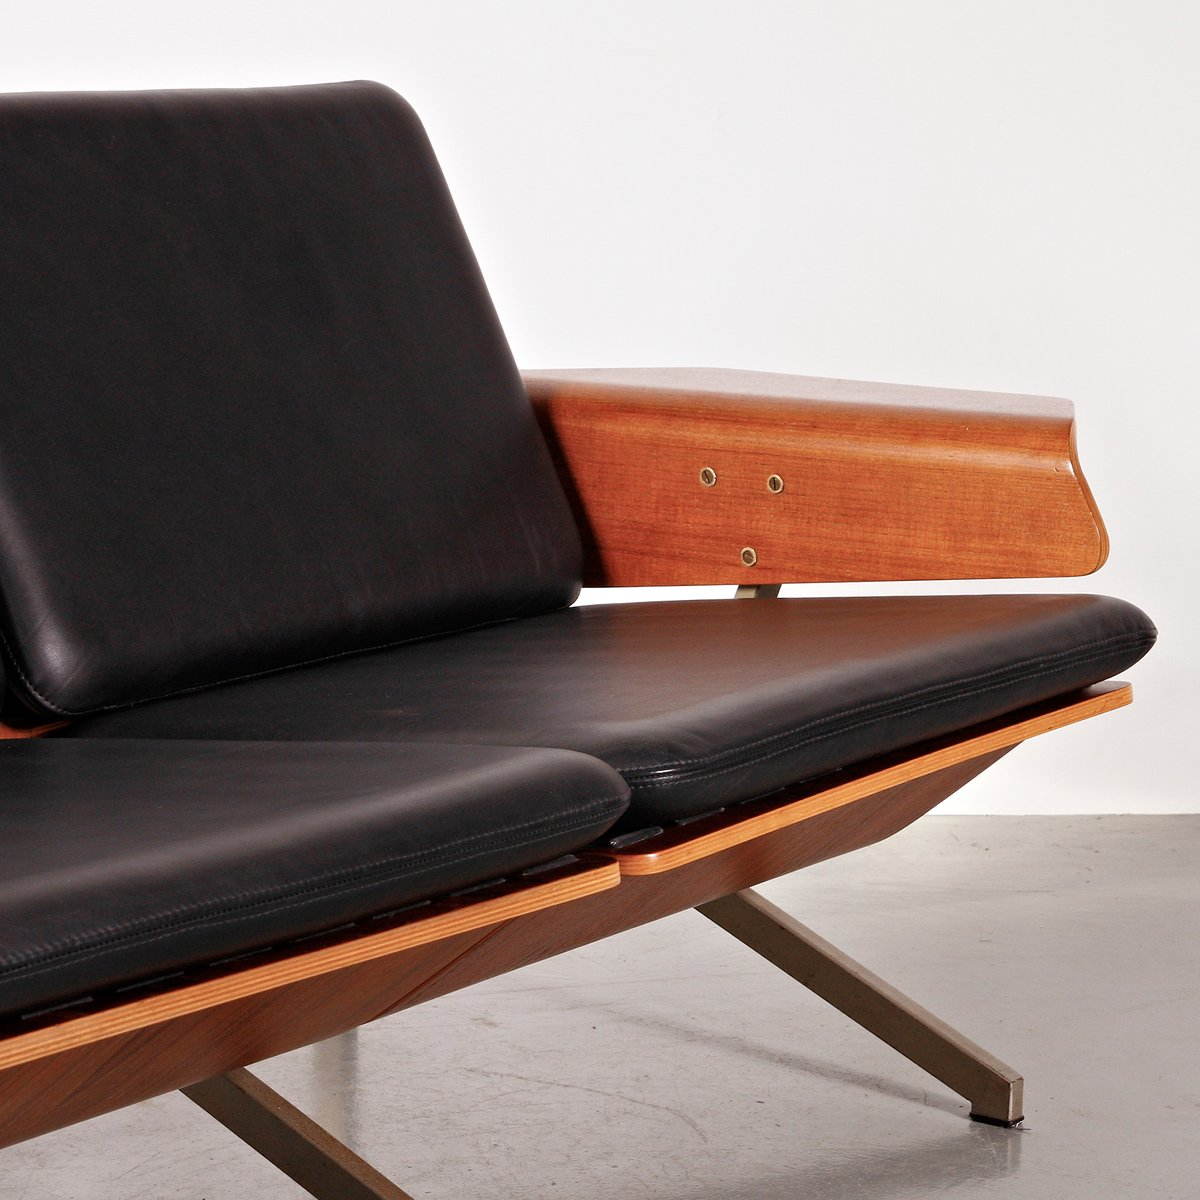 2 seater leather sofa by cornelis zitman 1964 for sale at pamono. Black Bedroom Furniture Sets. Home Design Ideas